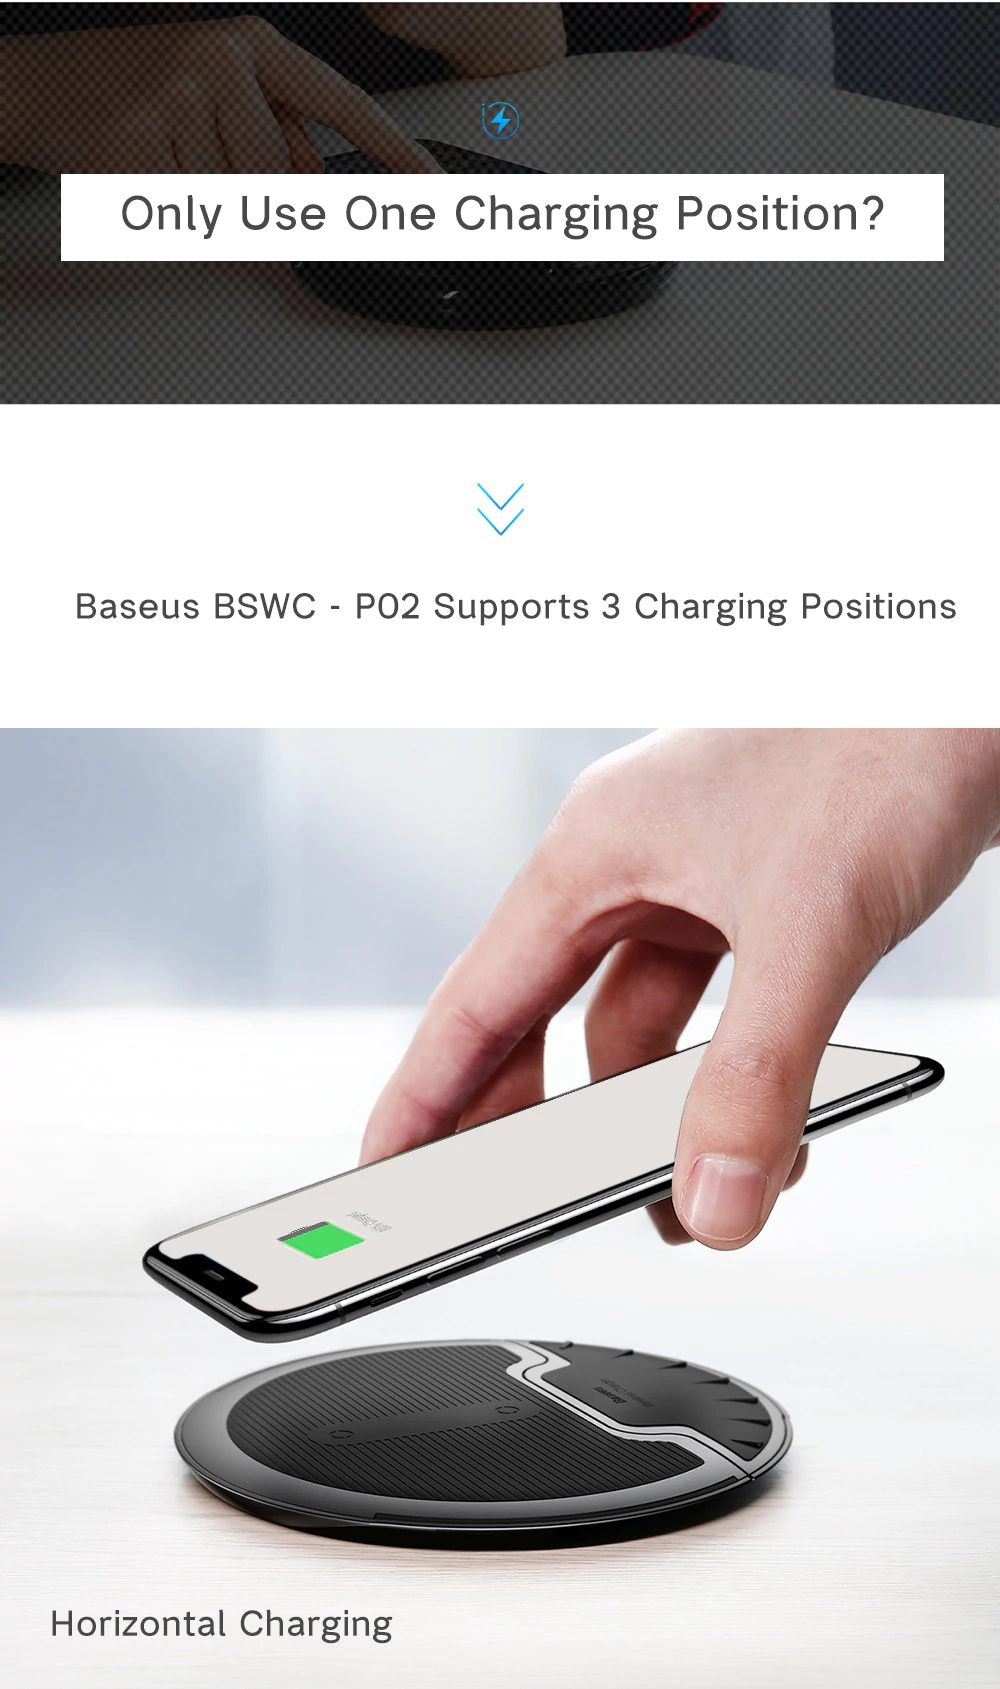 baseus bswc p02 charger